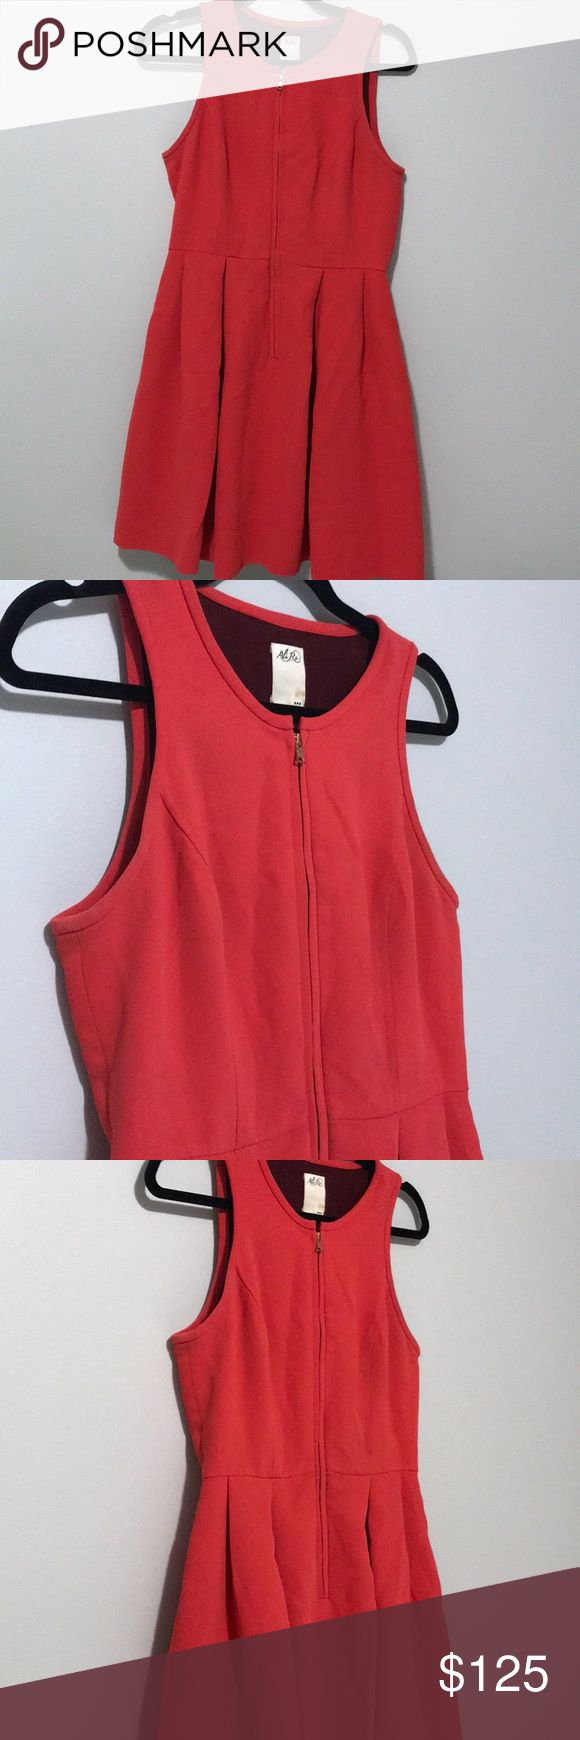 AIi Ro Peplum dress with zipper Bright red (an orangy-red) peplum dress with zipper (unzips all the way down - that's how you put it on!). Really cute on. Ali Ro Dresses Midi